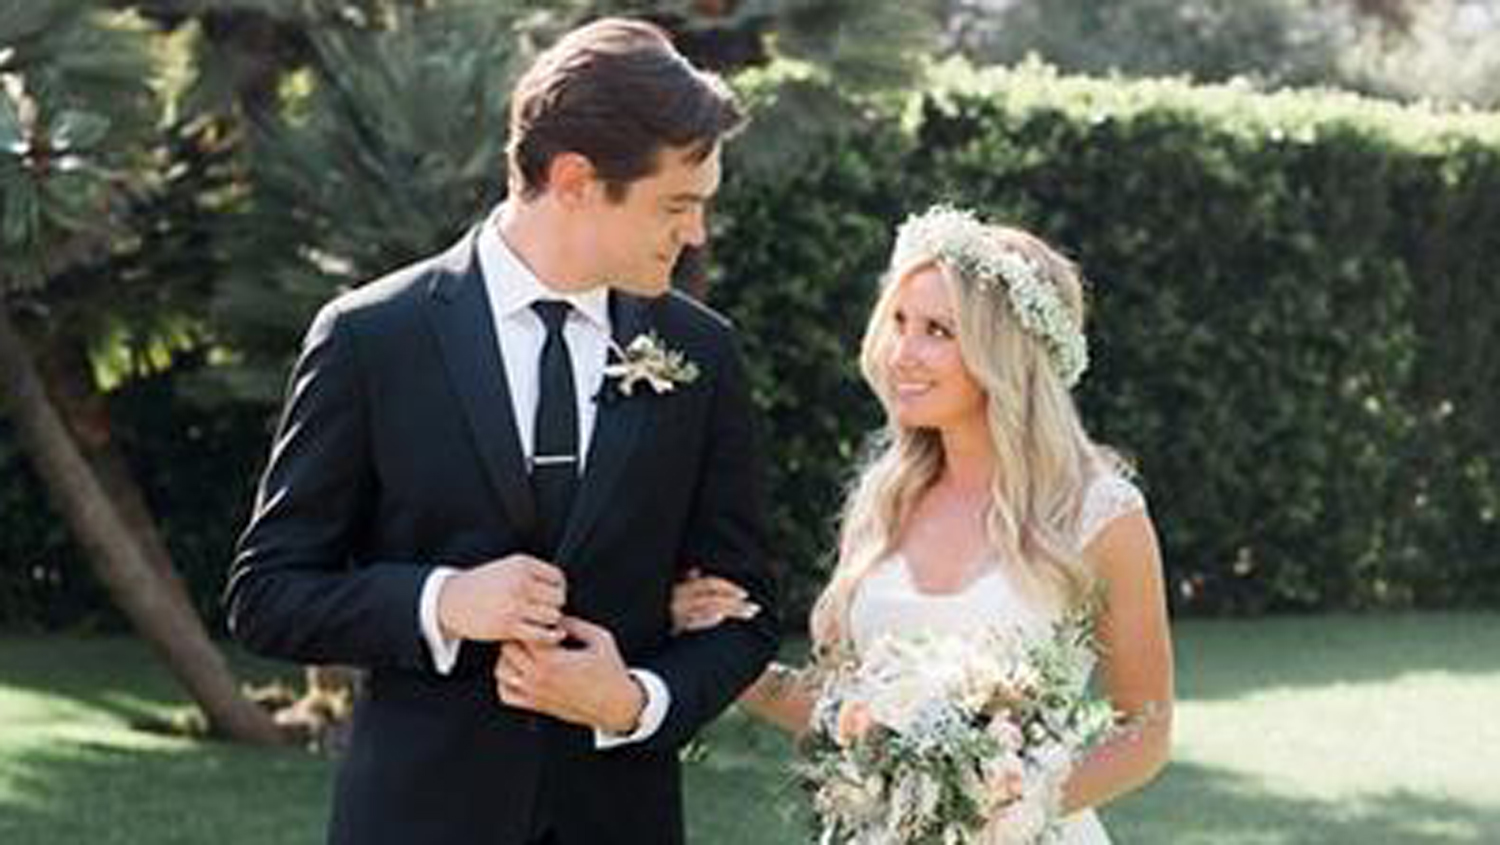 Ashley tisdale shares wedding photo on instagram today ombrellifo Image collections